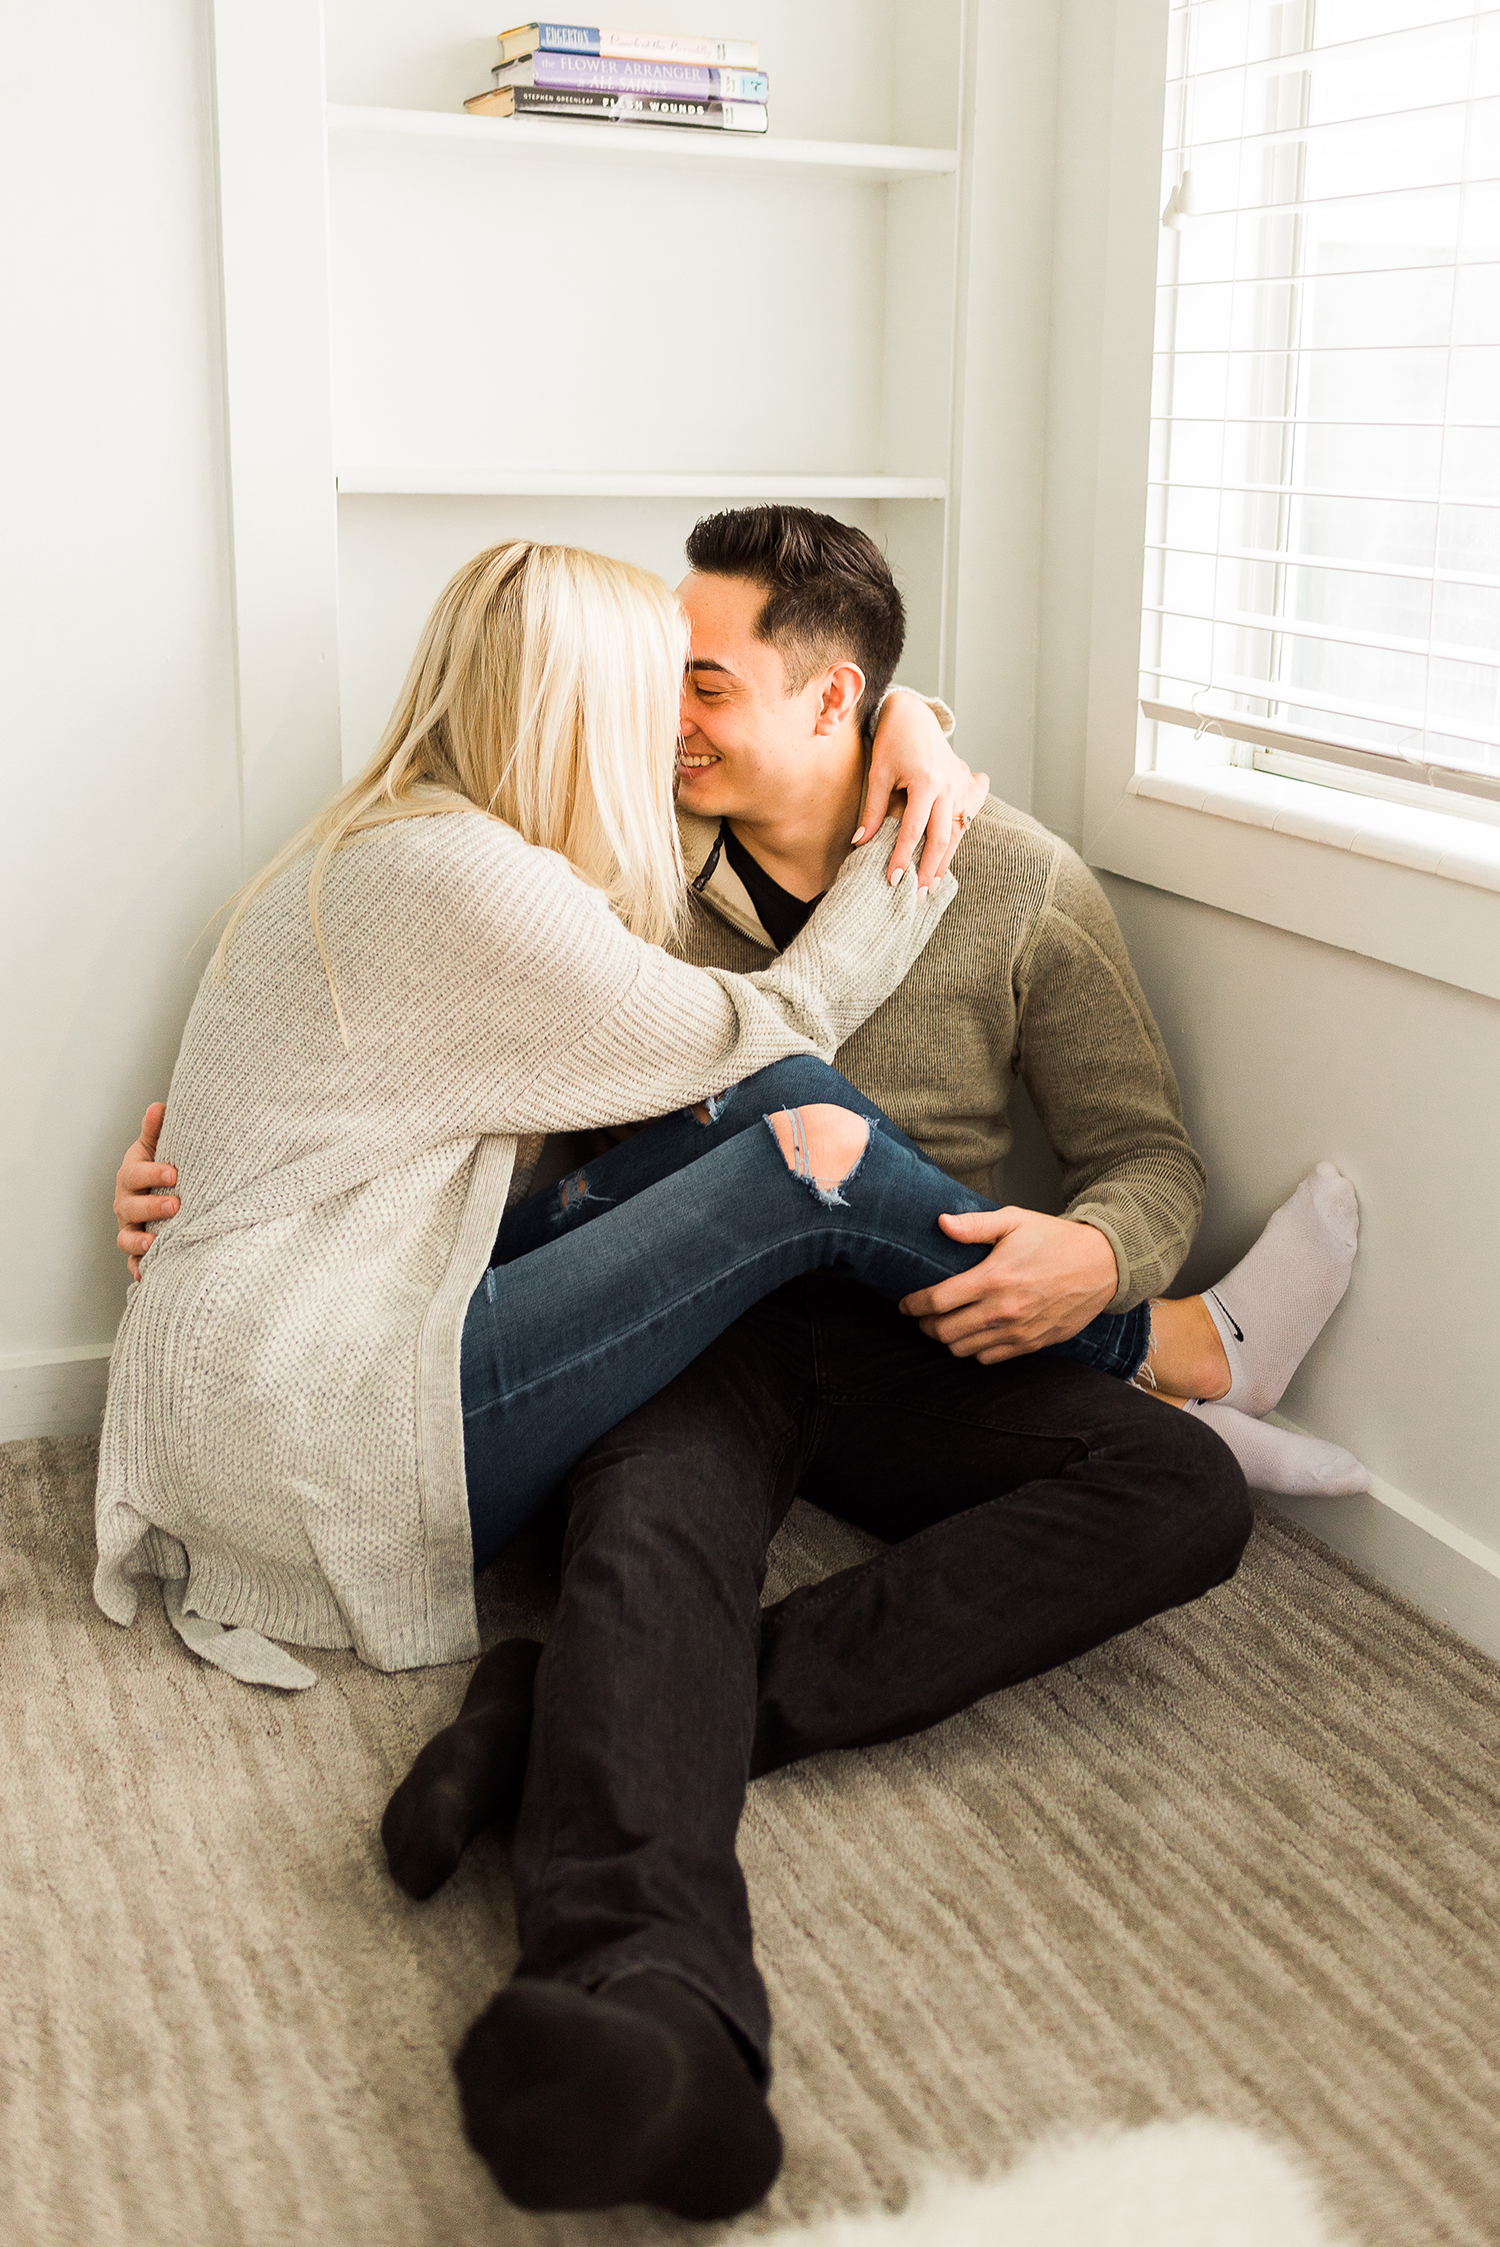 in-home-engagement-session-denver-engagement-photographer_2.jpg